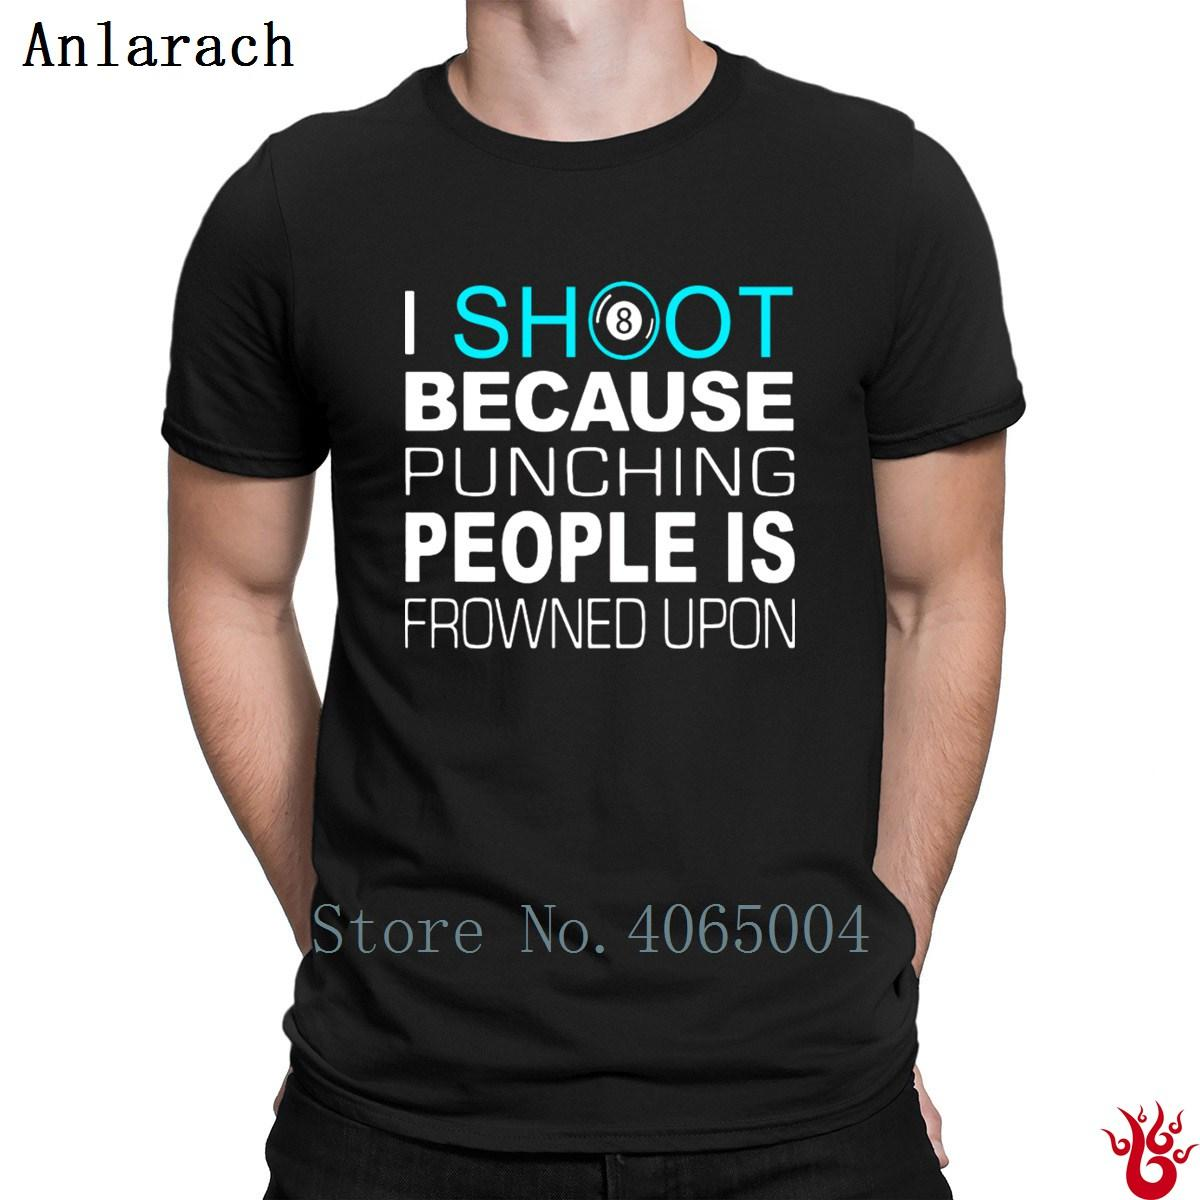 0ebb818f6f Billiards Punching People Funny T Shirt HipHop Tops Unique Gift Tshirt For  Men Summer Funny Short Sleeve Original Personalized T Shirt Online T Shirt  ...